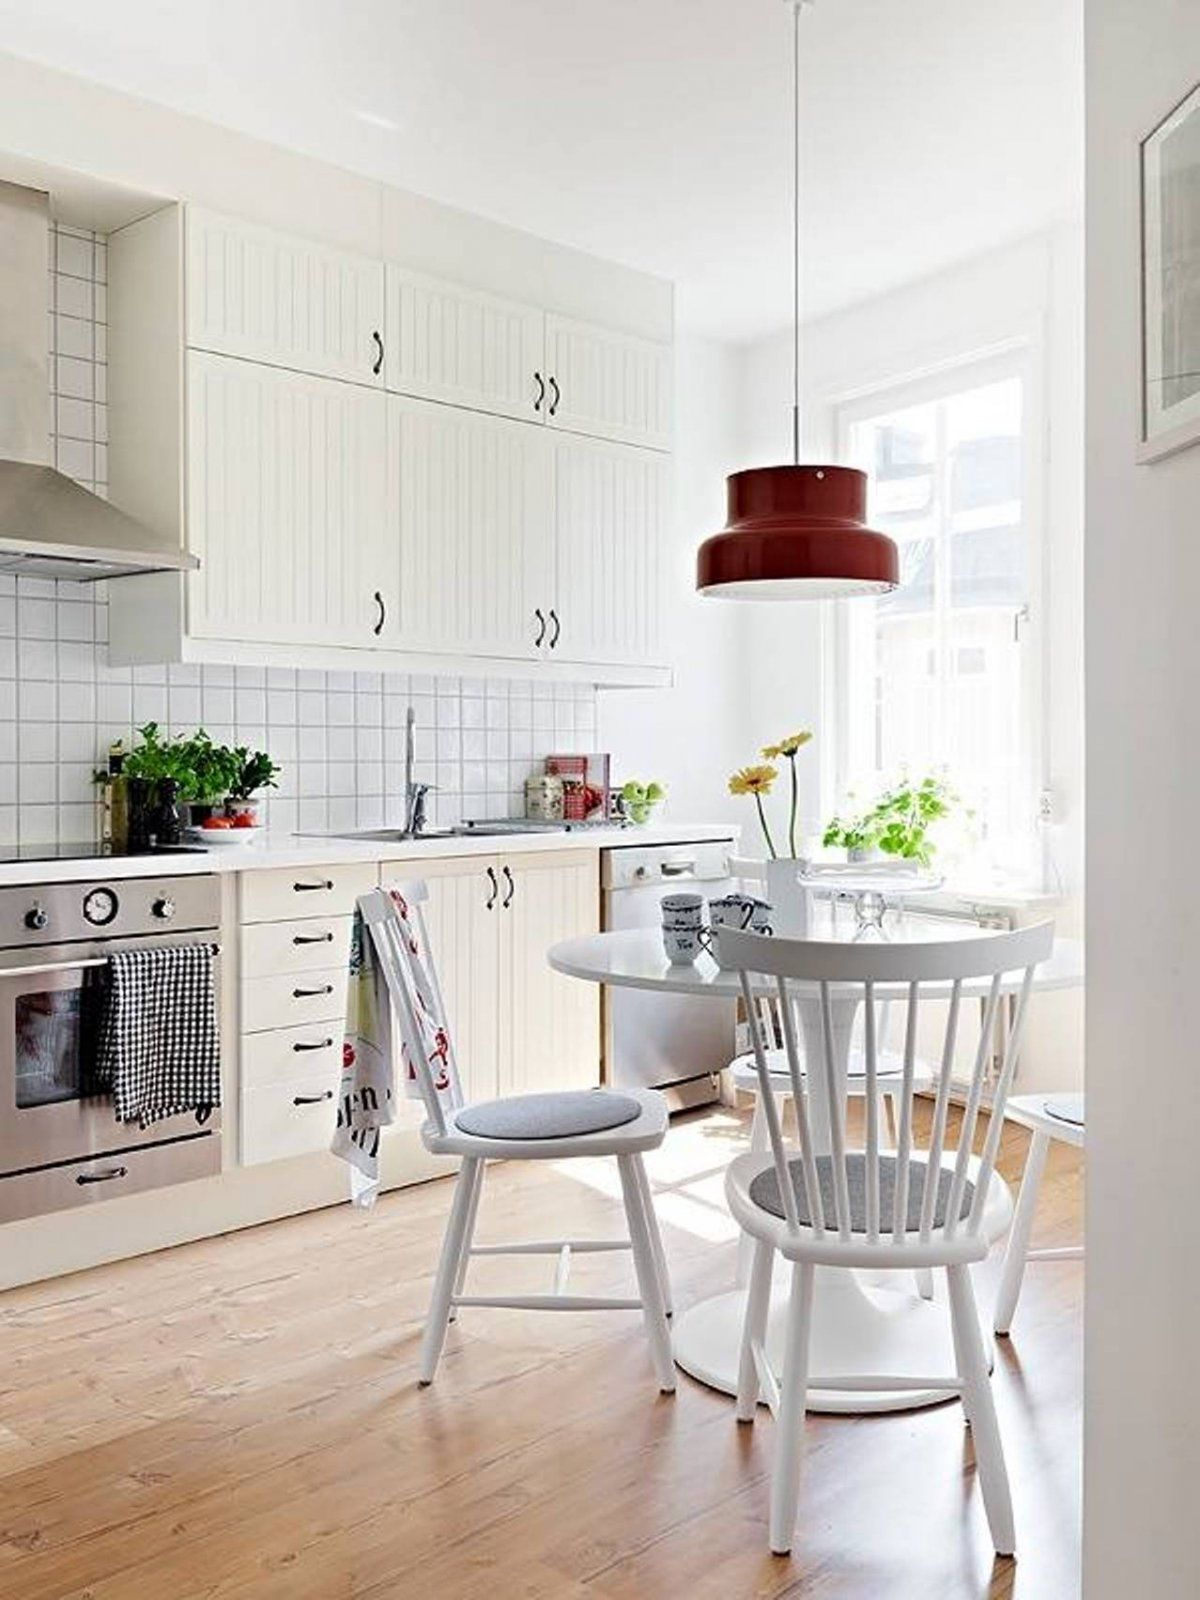 Architecture Modern Scandinavian Interior Kitchen Design With Bright ...